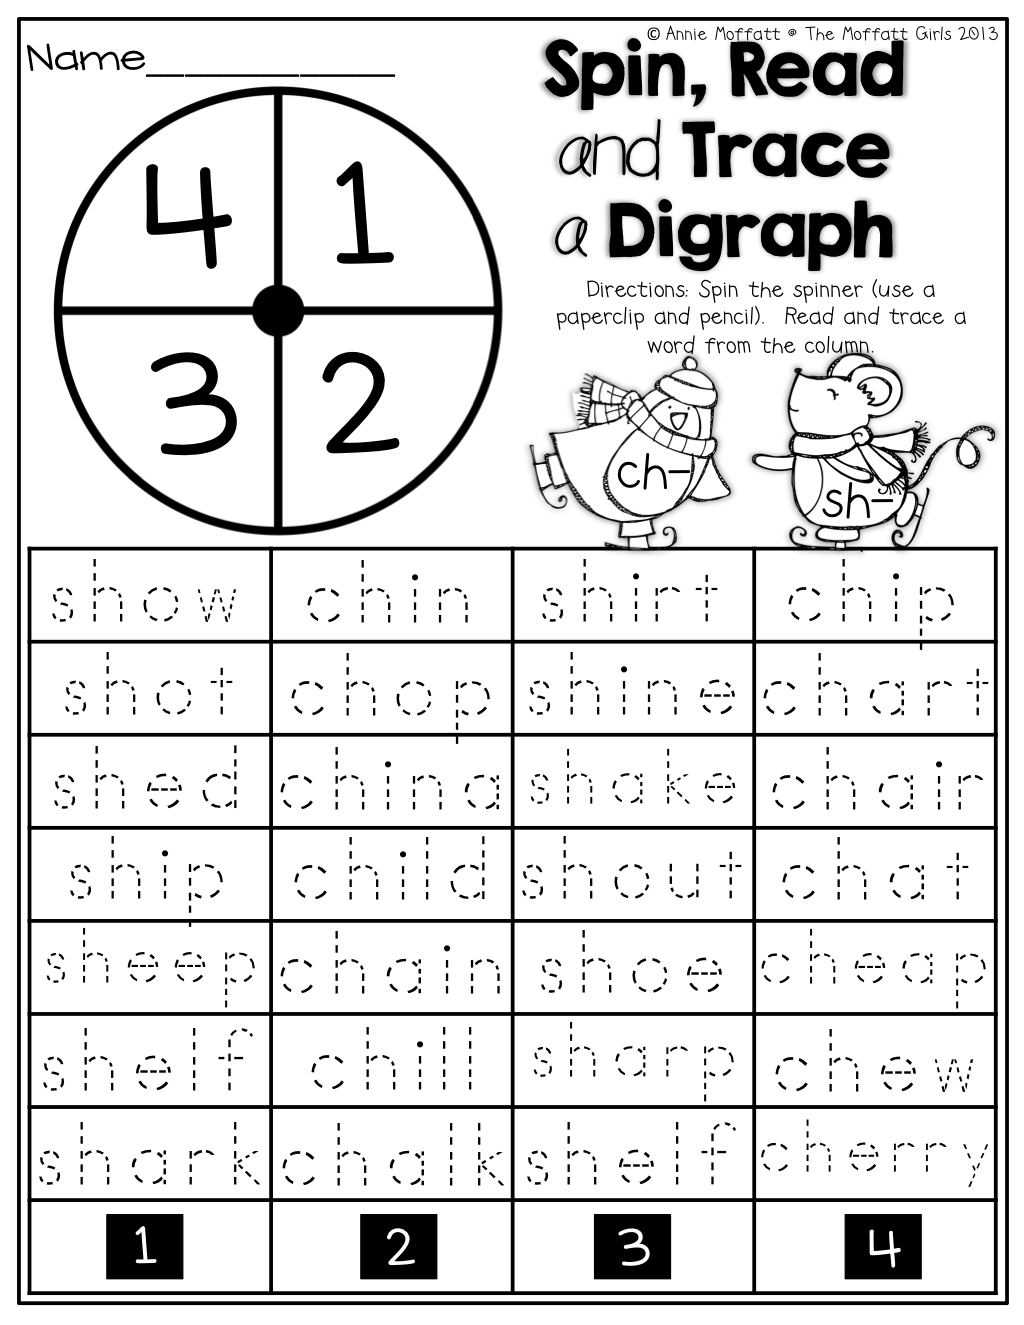 Tracing Wh Diagraph Worksheet